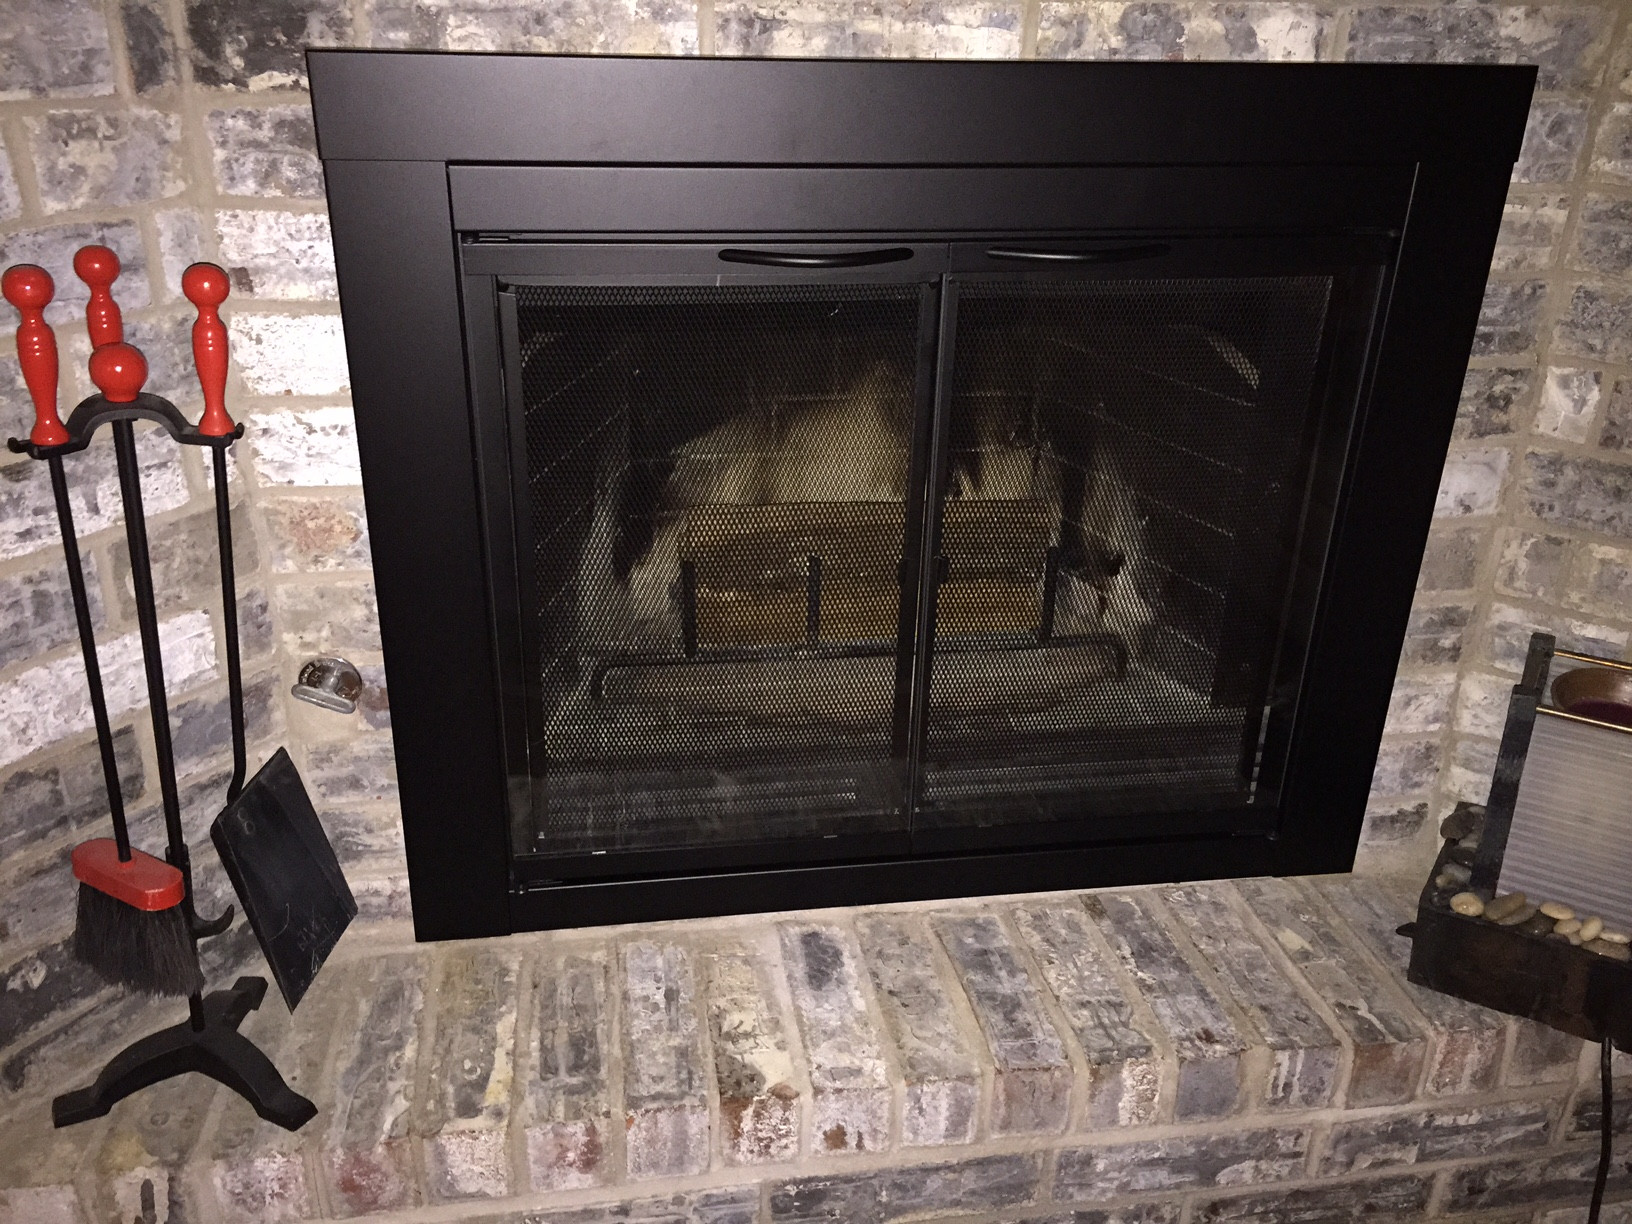 Best ideas about Glass Doors For Fireplace . Save or Pin Fireplace Glass Doors Now.